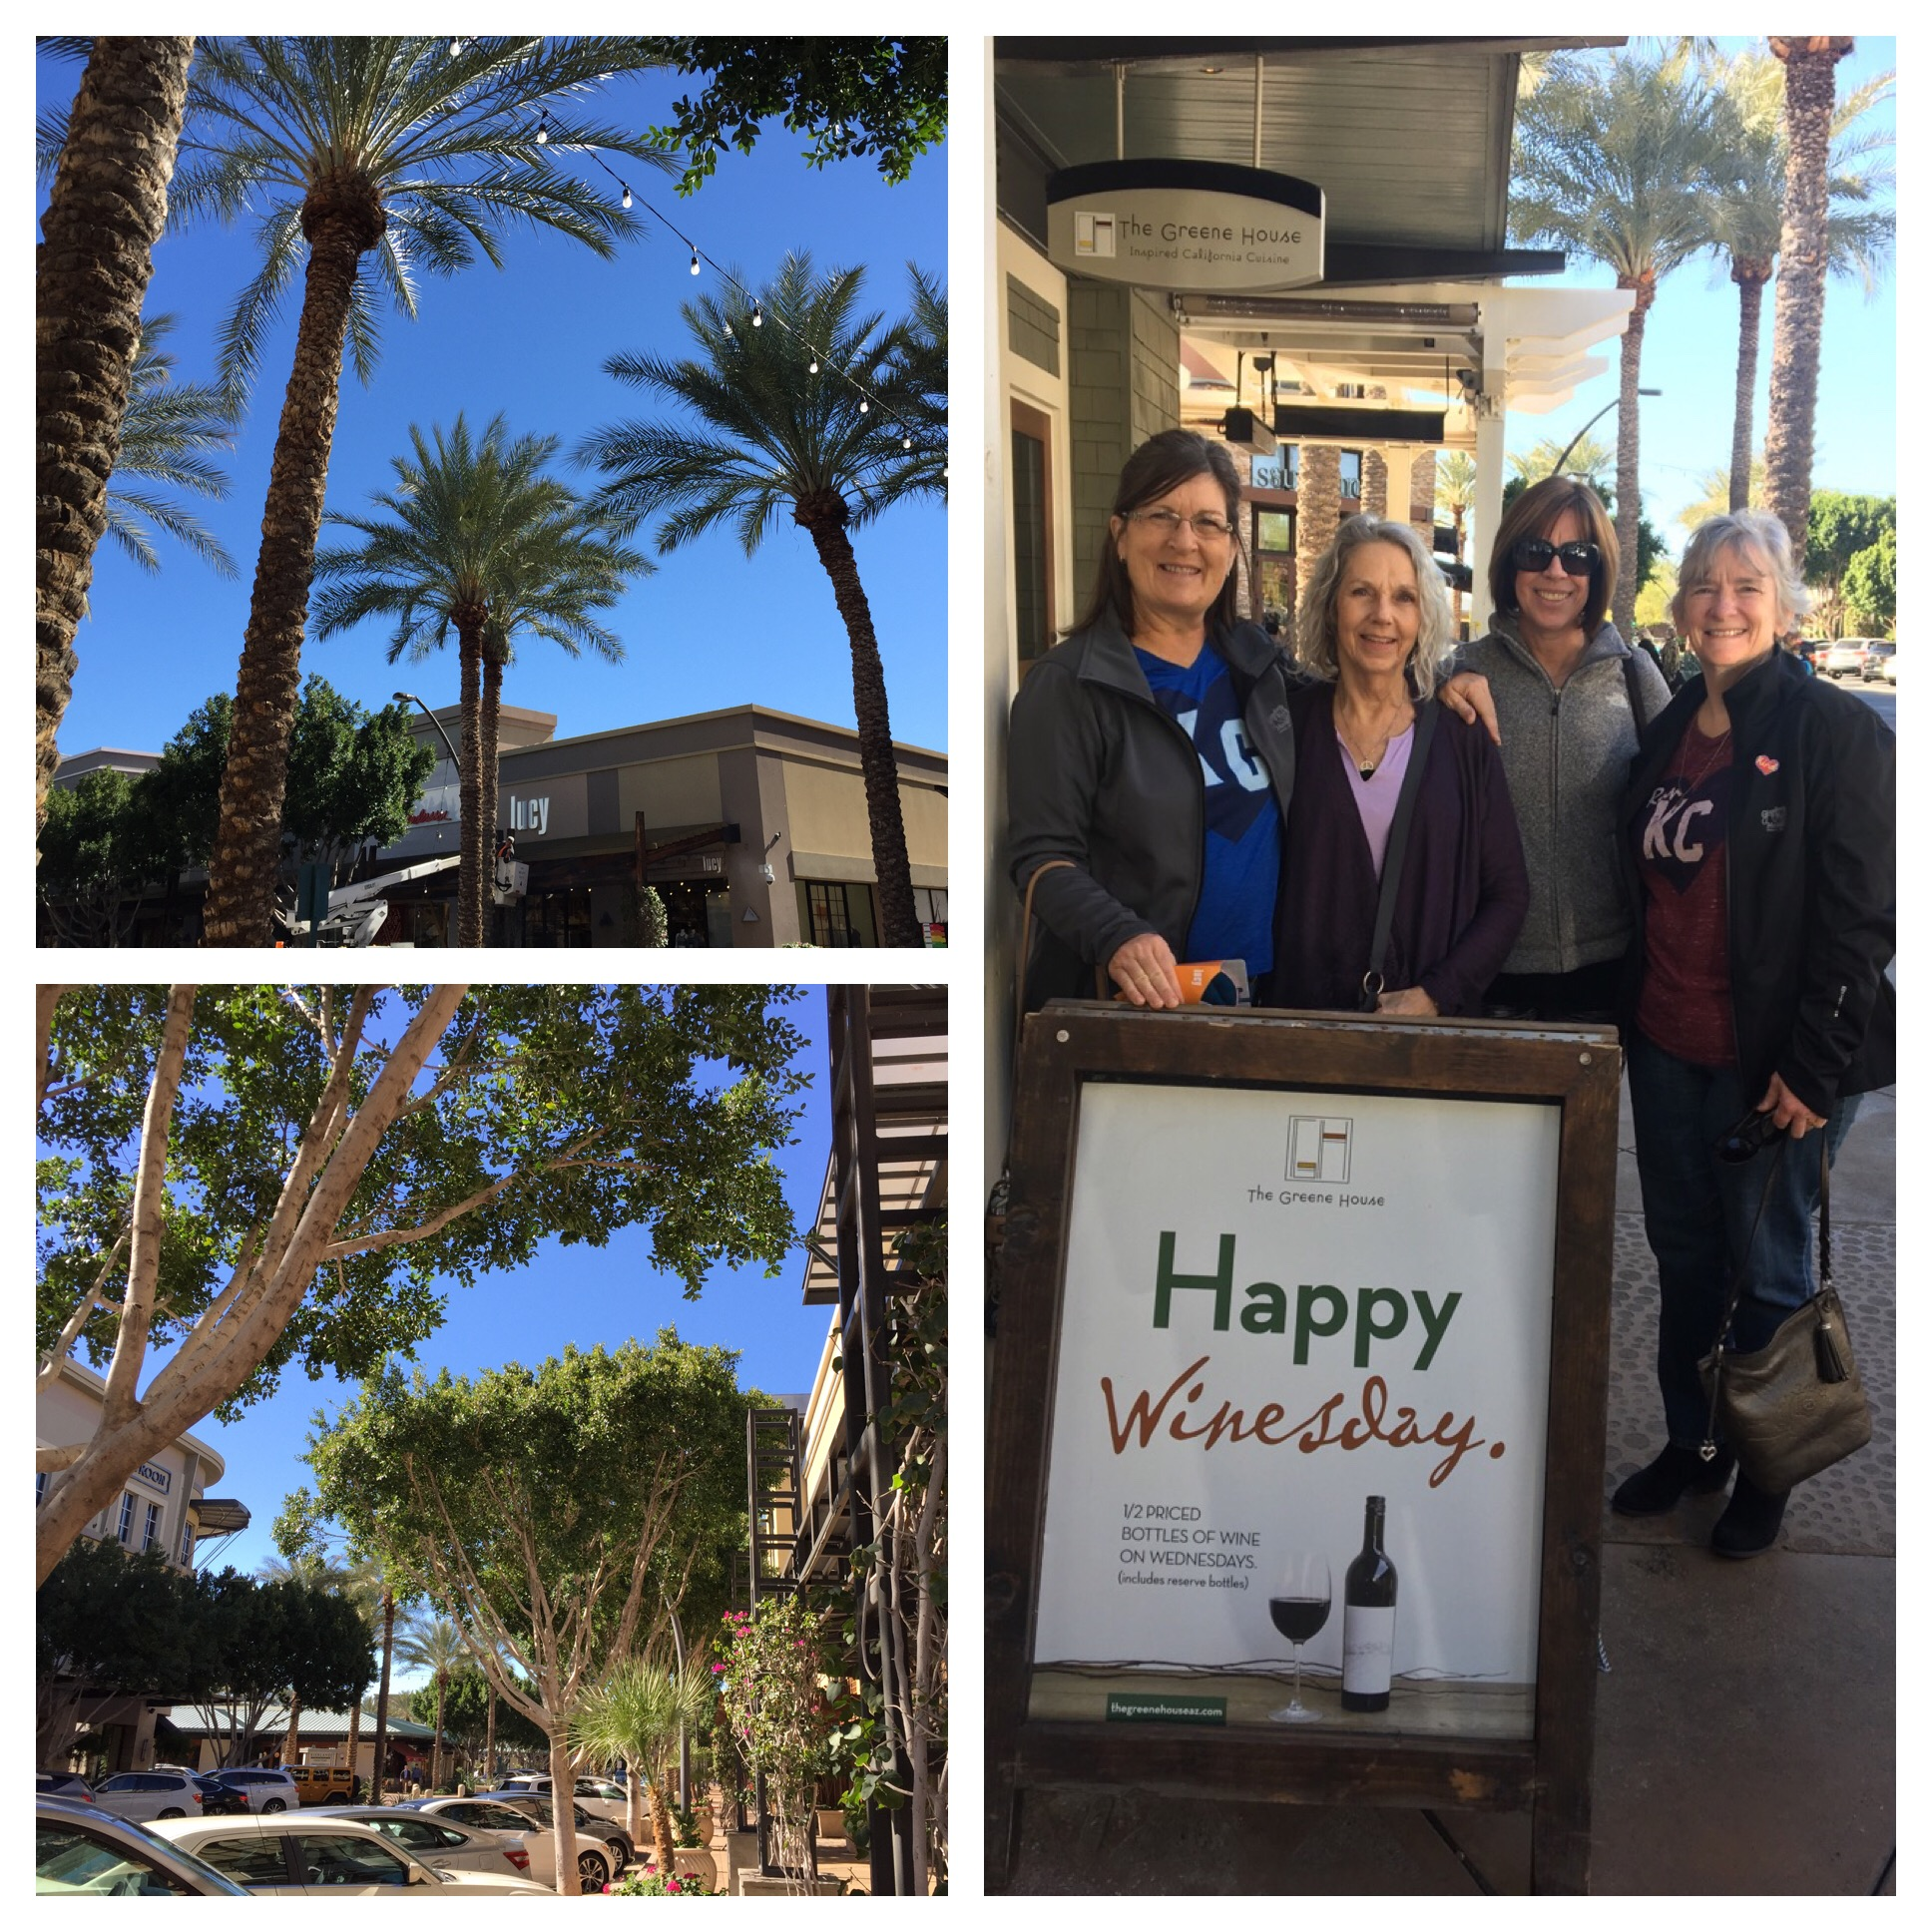 A beautiful area in Scottsdale with lots of upscale shops and restaurants - gorgeous landscaping! Isn't every day Winesday??